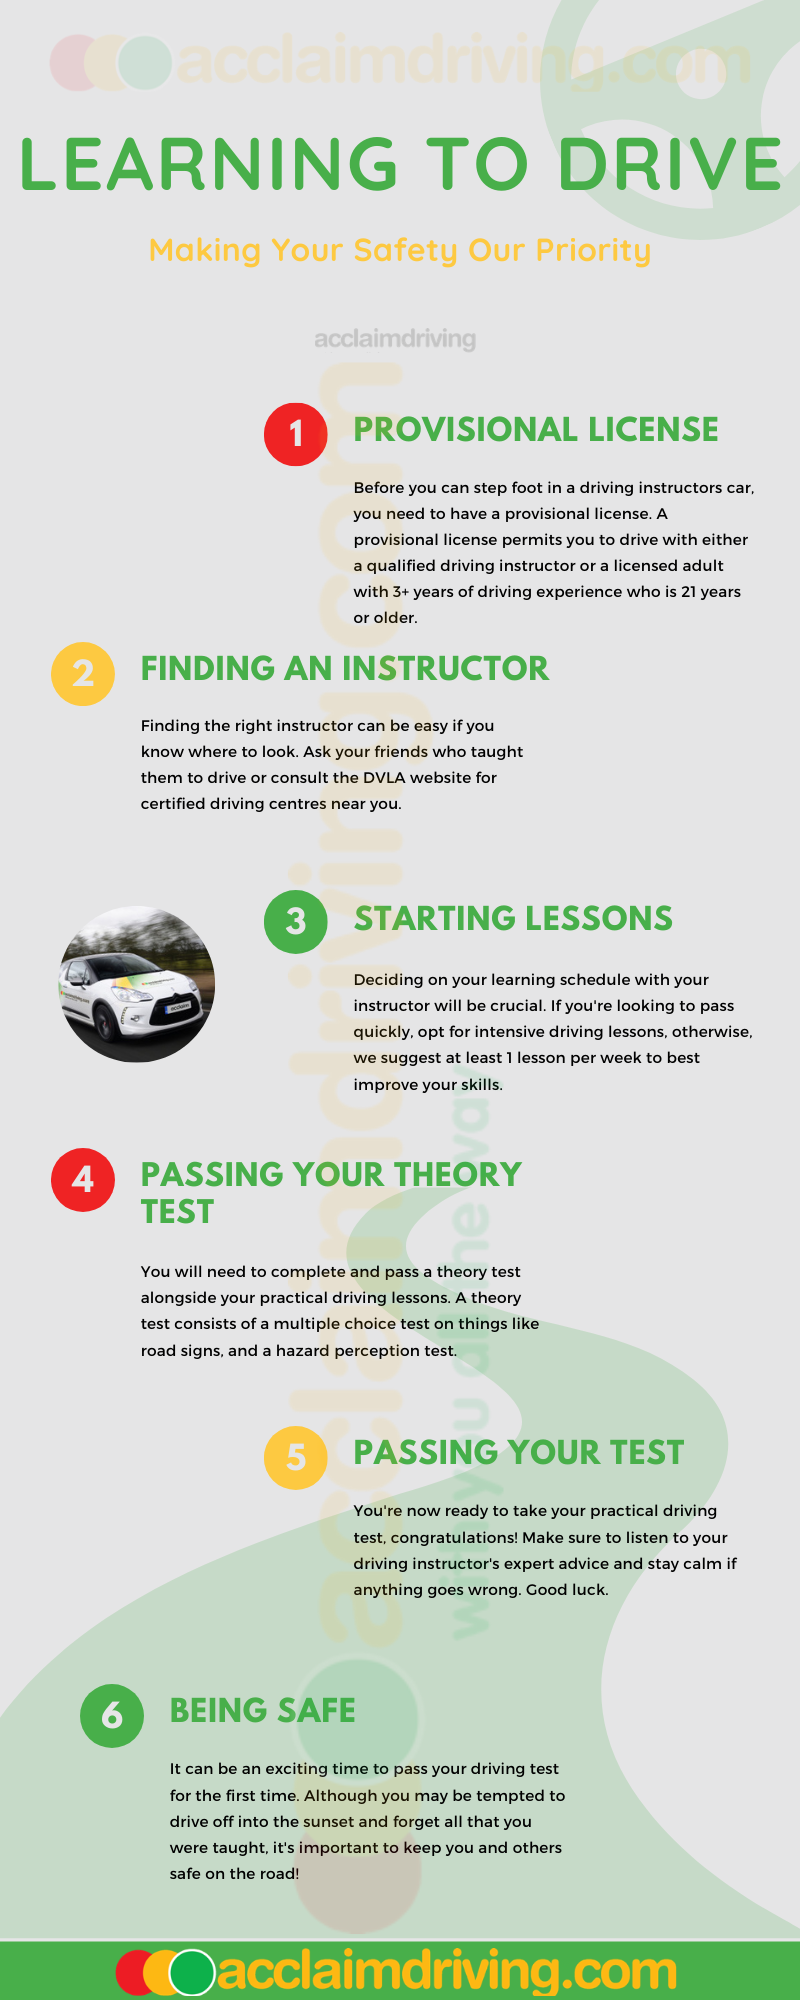 Acclaim Driving infographic for learning to drive